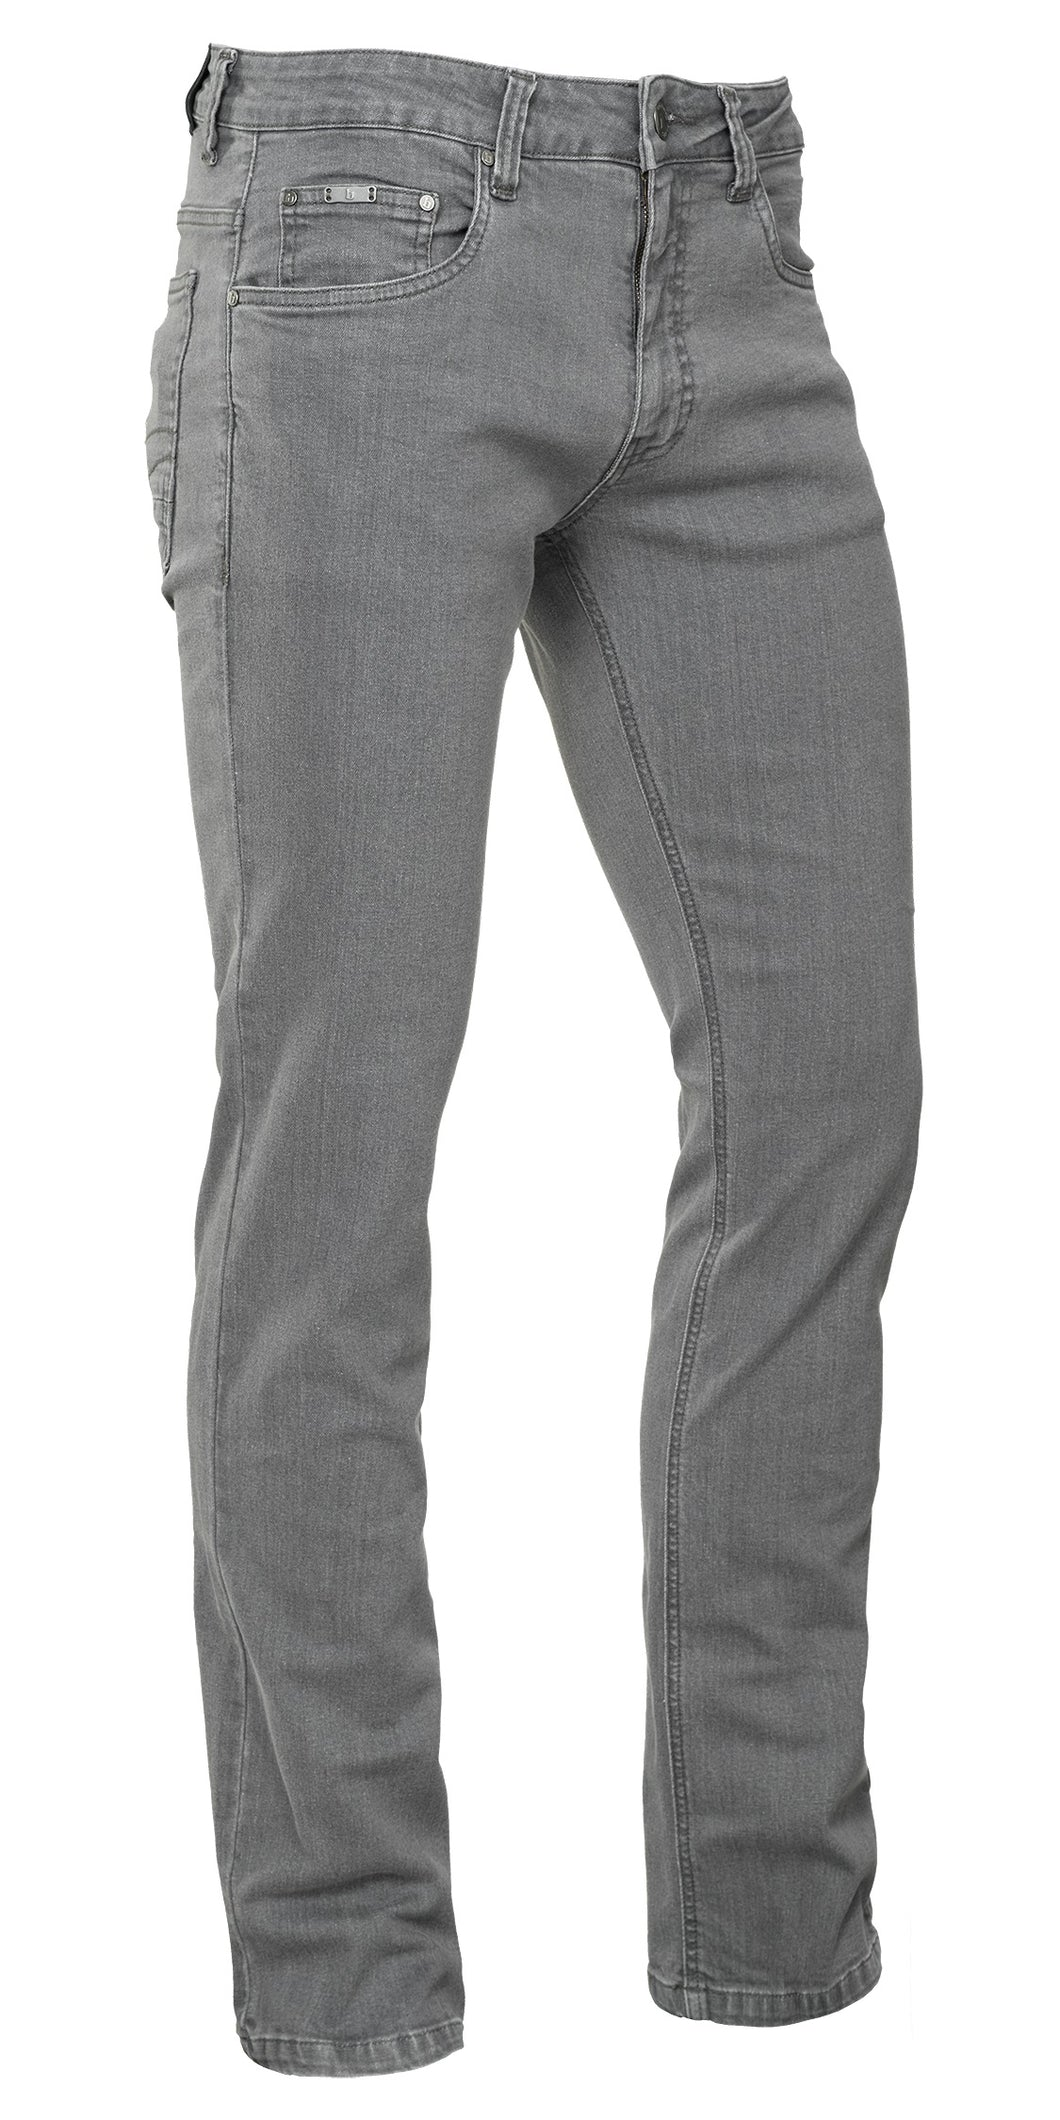 Bram's Paris Danny C70 Grey denim